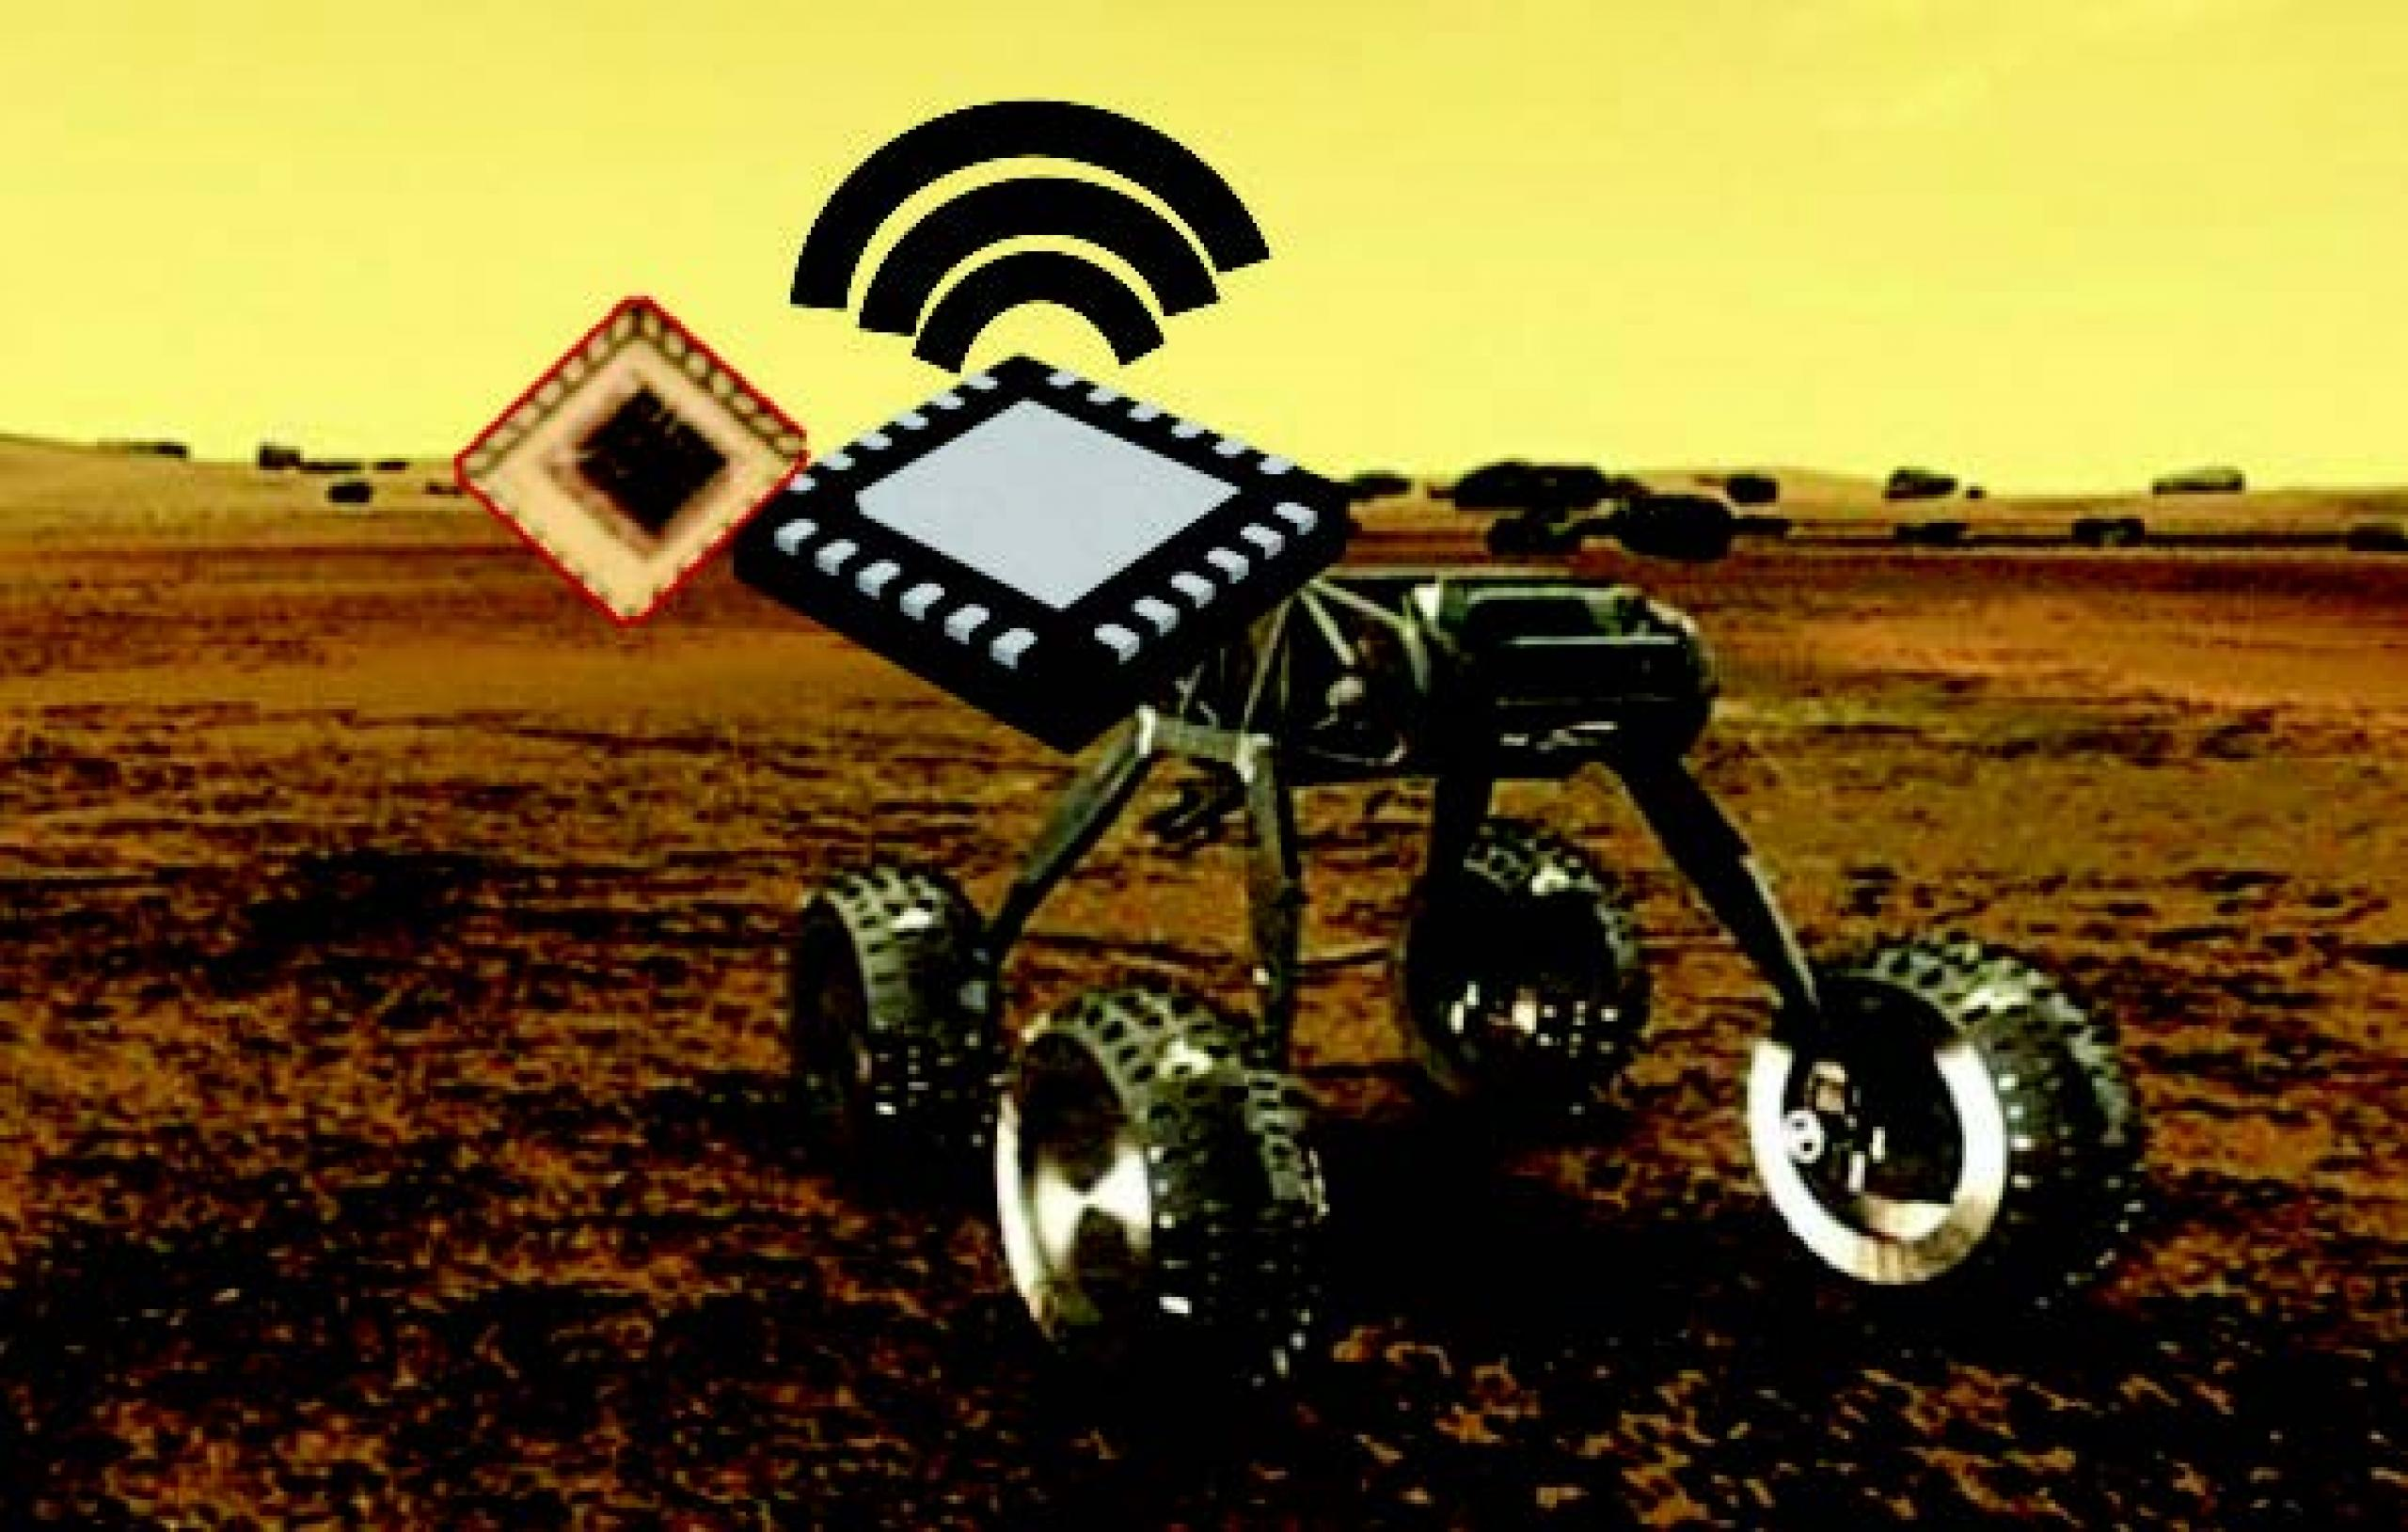 Artist concept of exploration vehicle on the surface of Venus